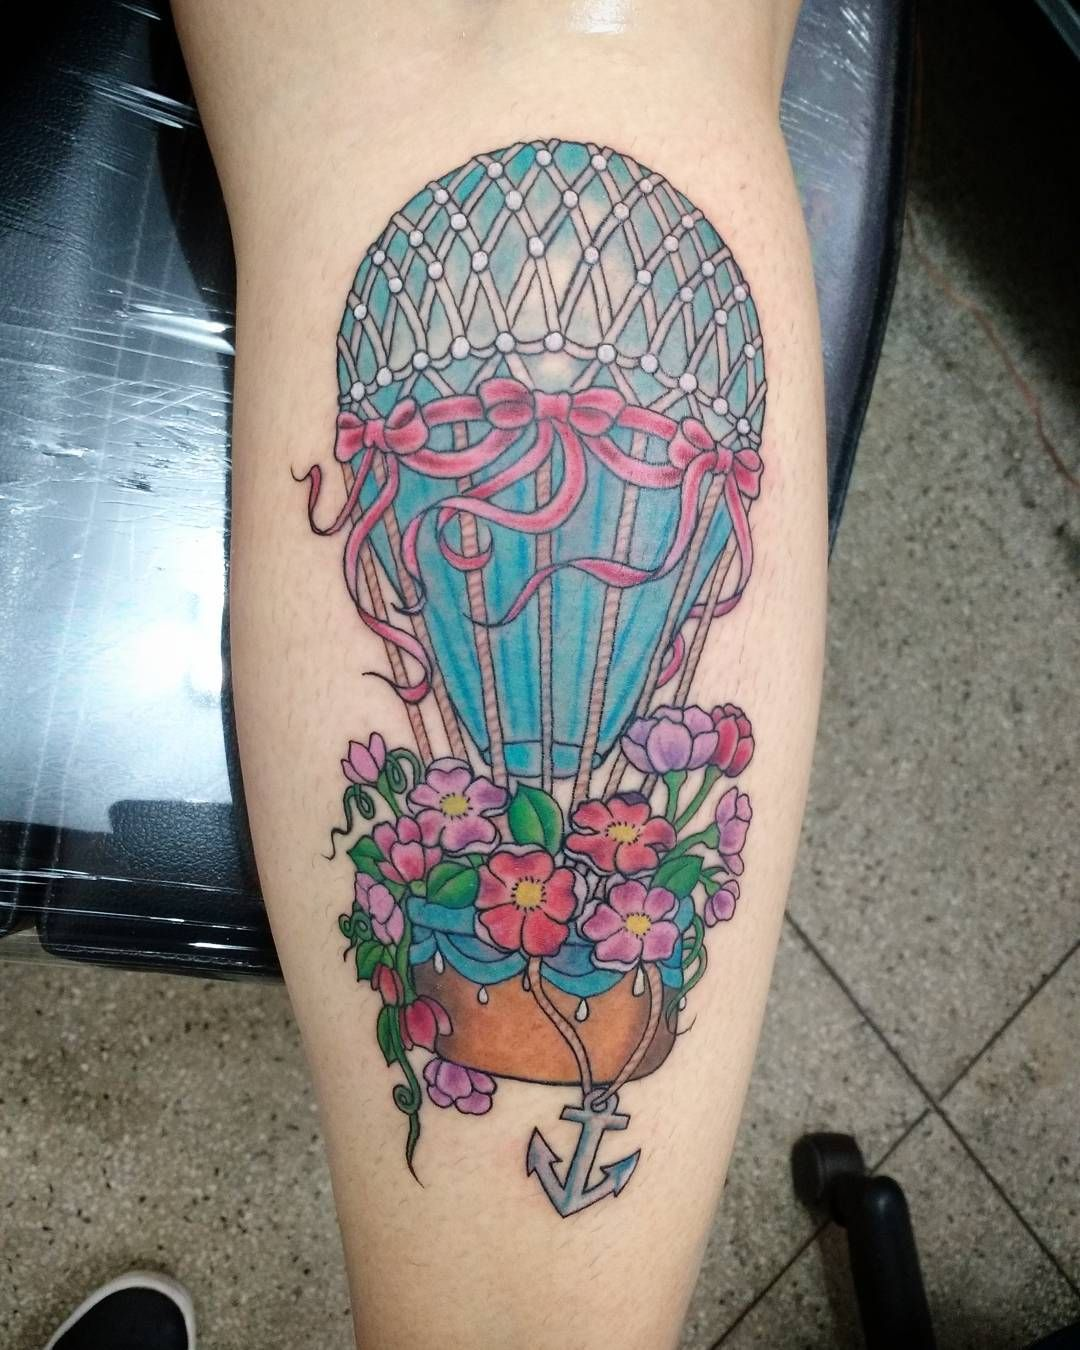 Pin By Alice C On Tattoos Balloon Tattoo Watercolor Tattoo Tattoos